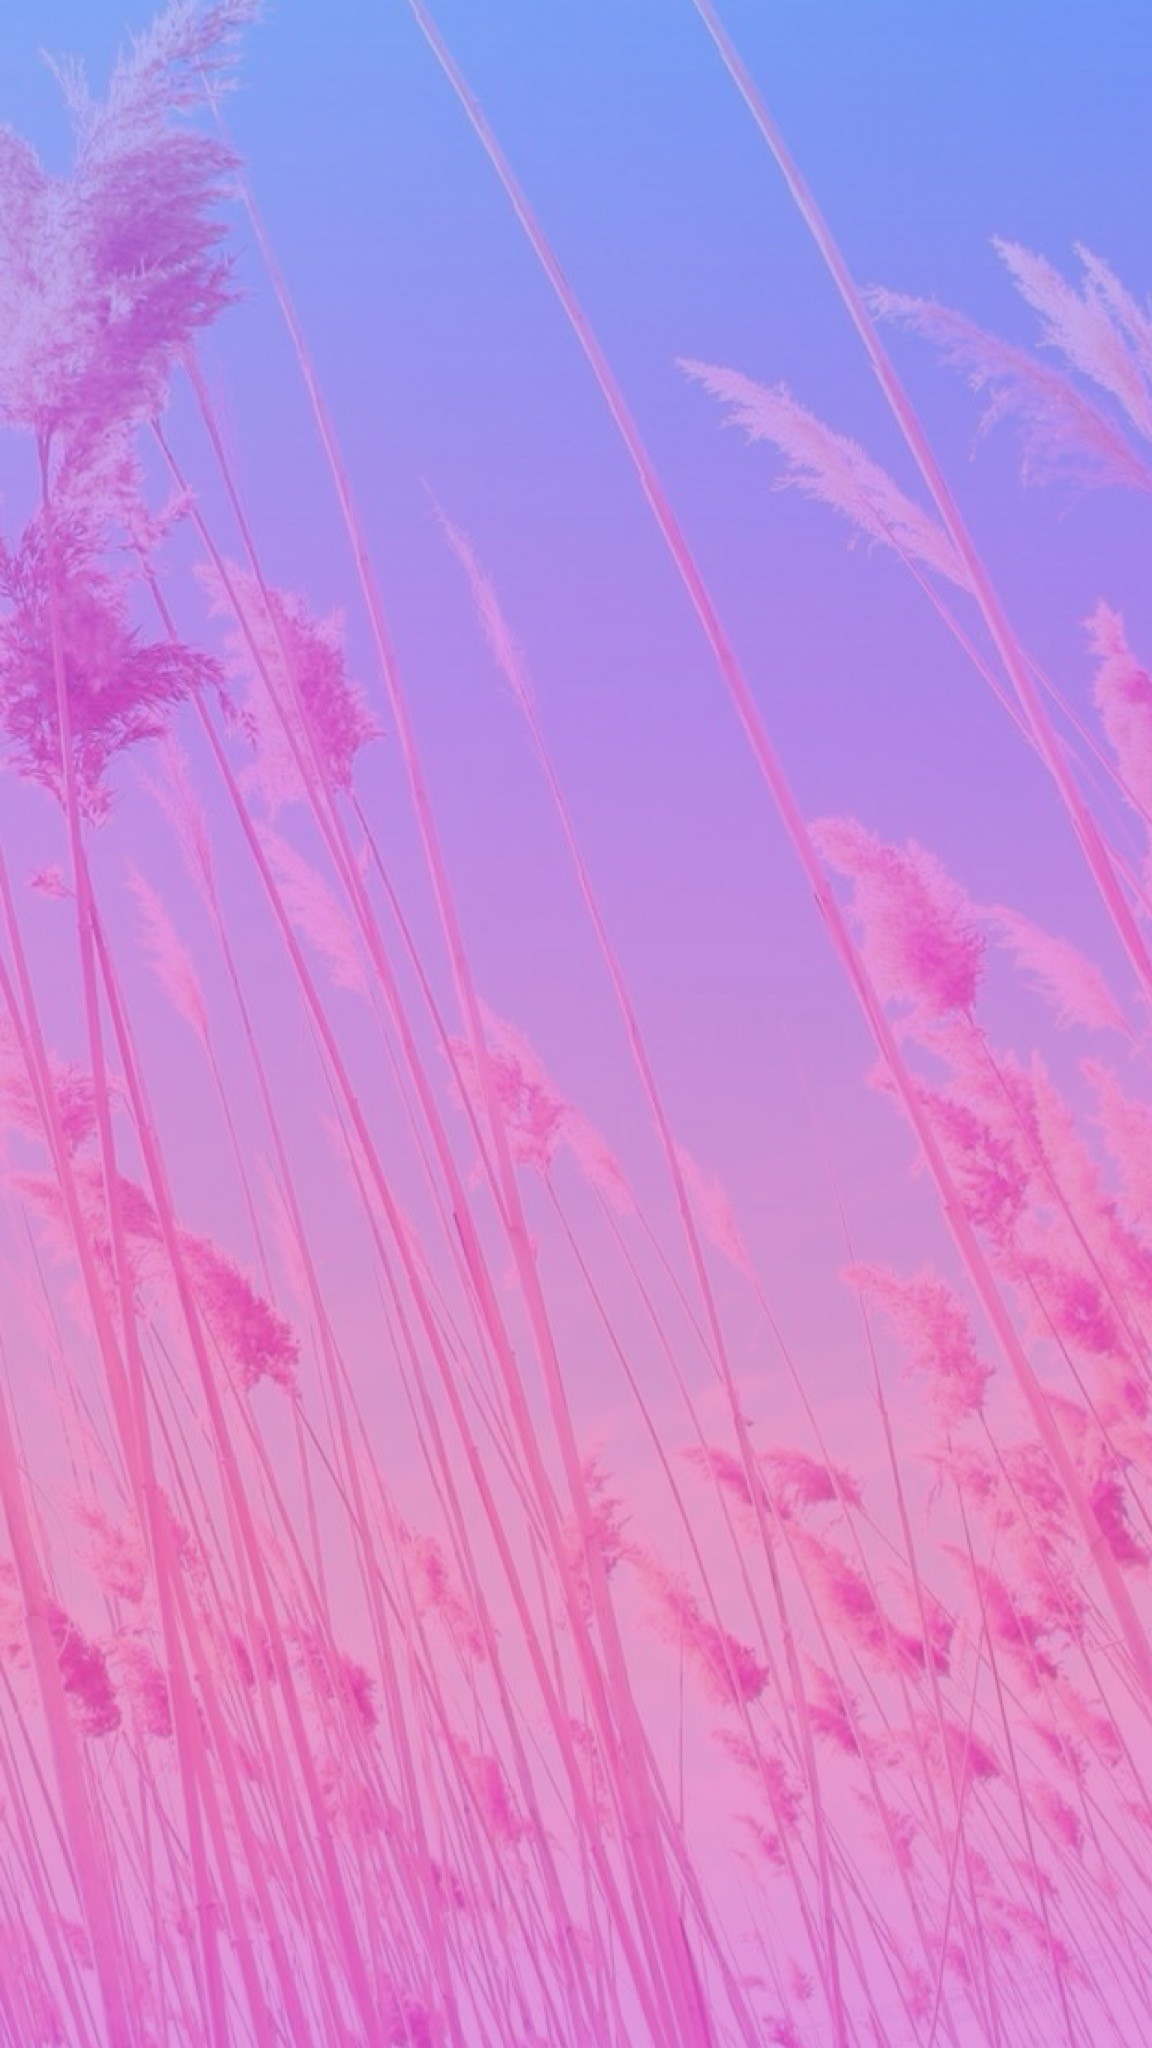 Original image not by me! I just made the ombré/gradient. Pink,